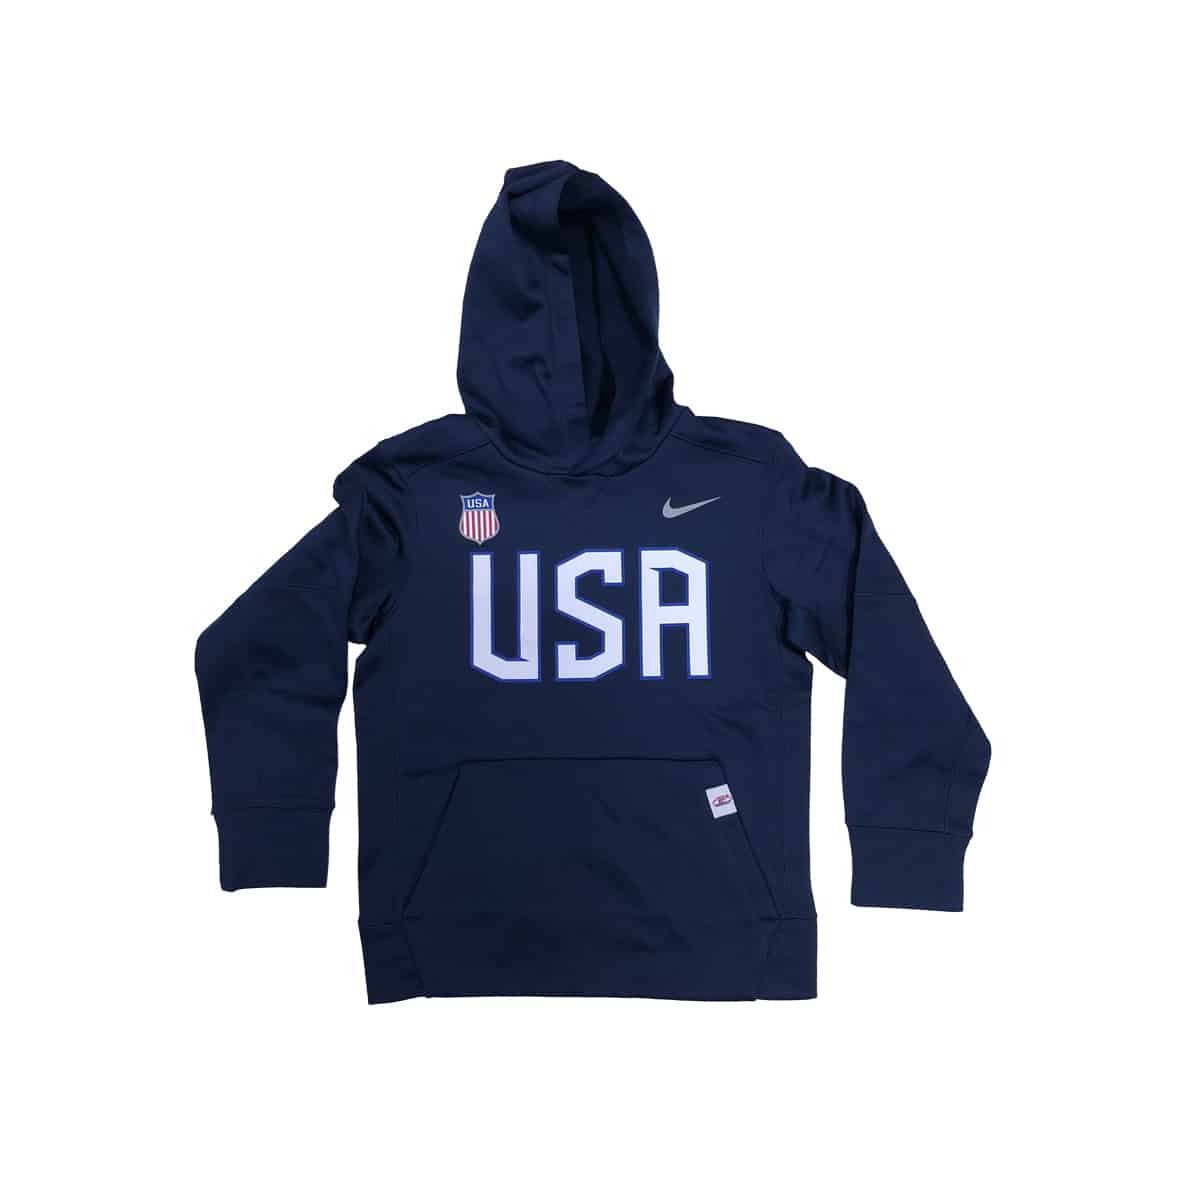 c8d8af844a75 USA Hockey Youth Nike Therma Hoodie